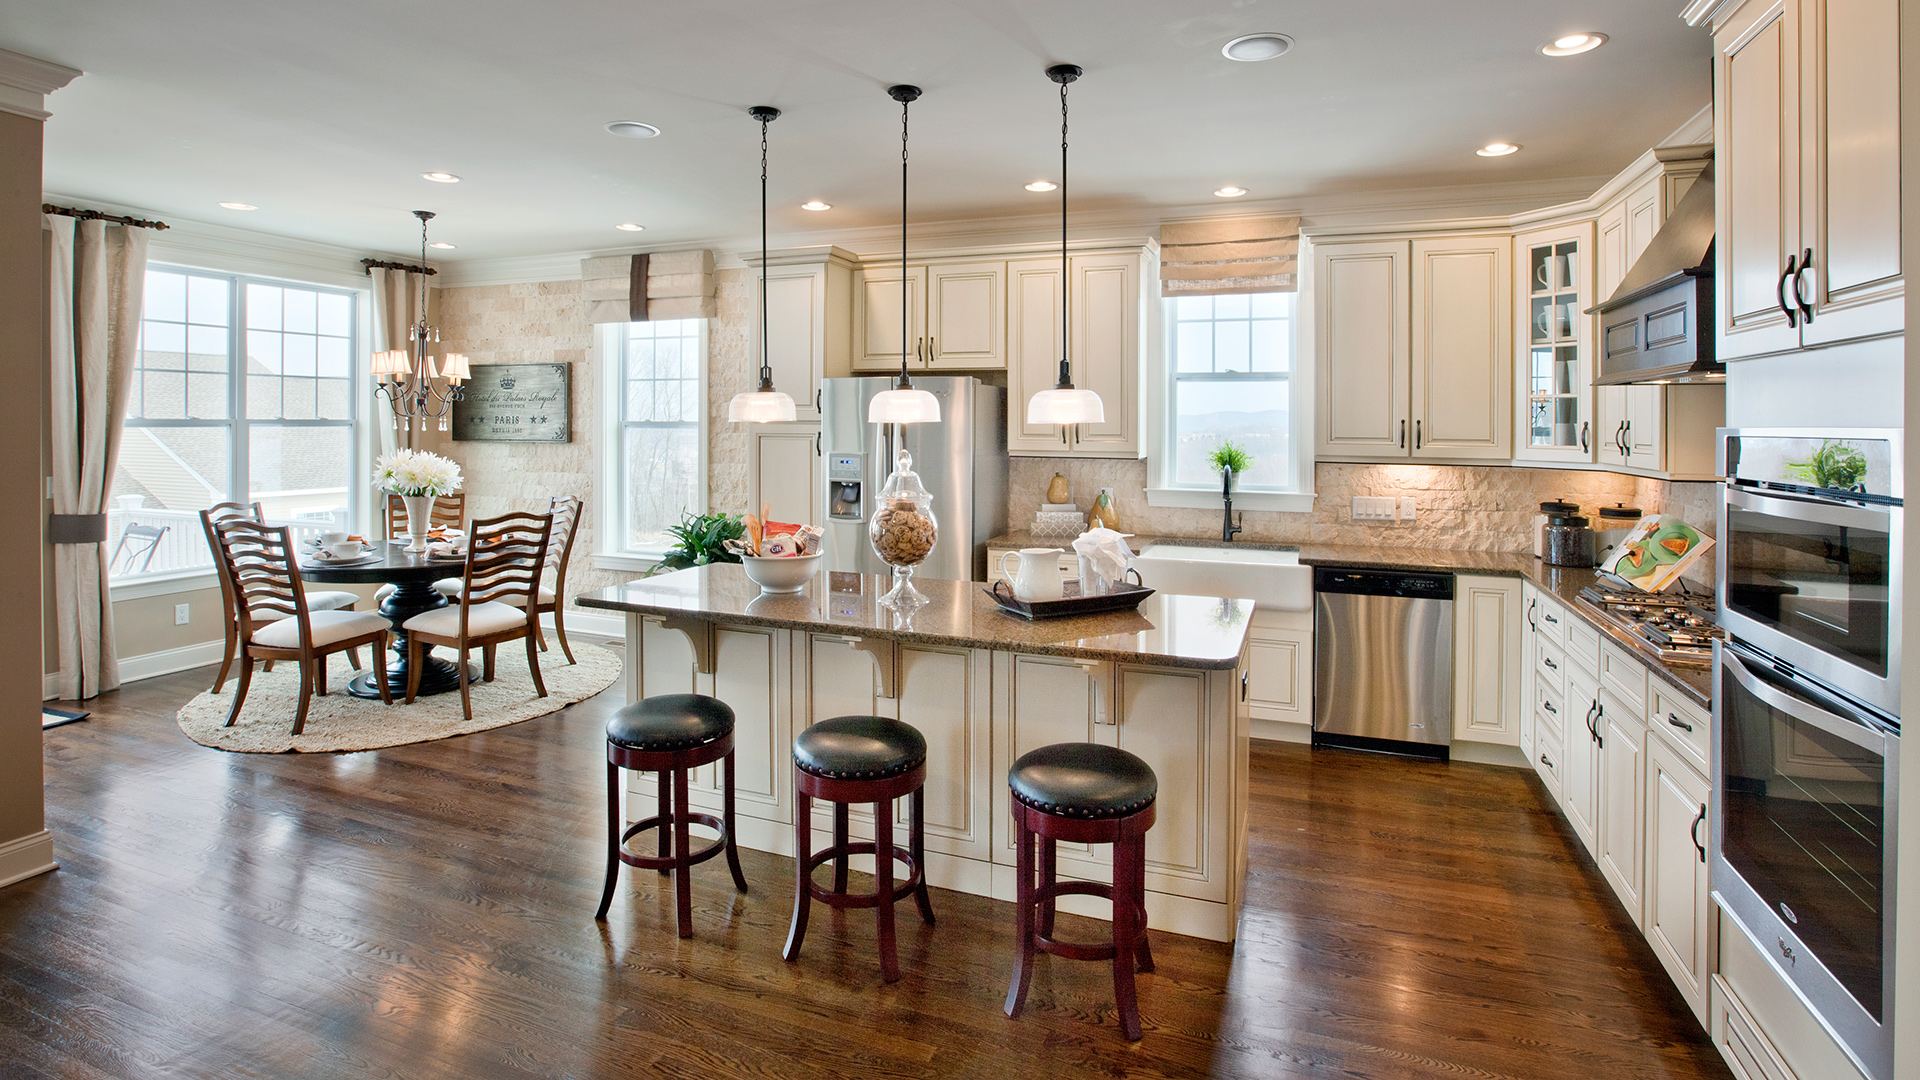 Pictures Of Toll Brothers Kitchens | Dandk Organizer on Model Kitchen Ideas  id=24759